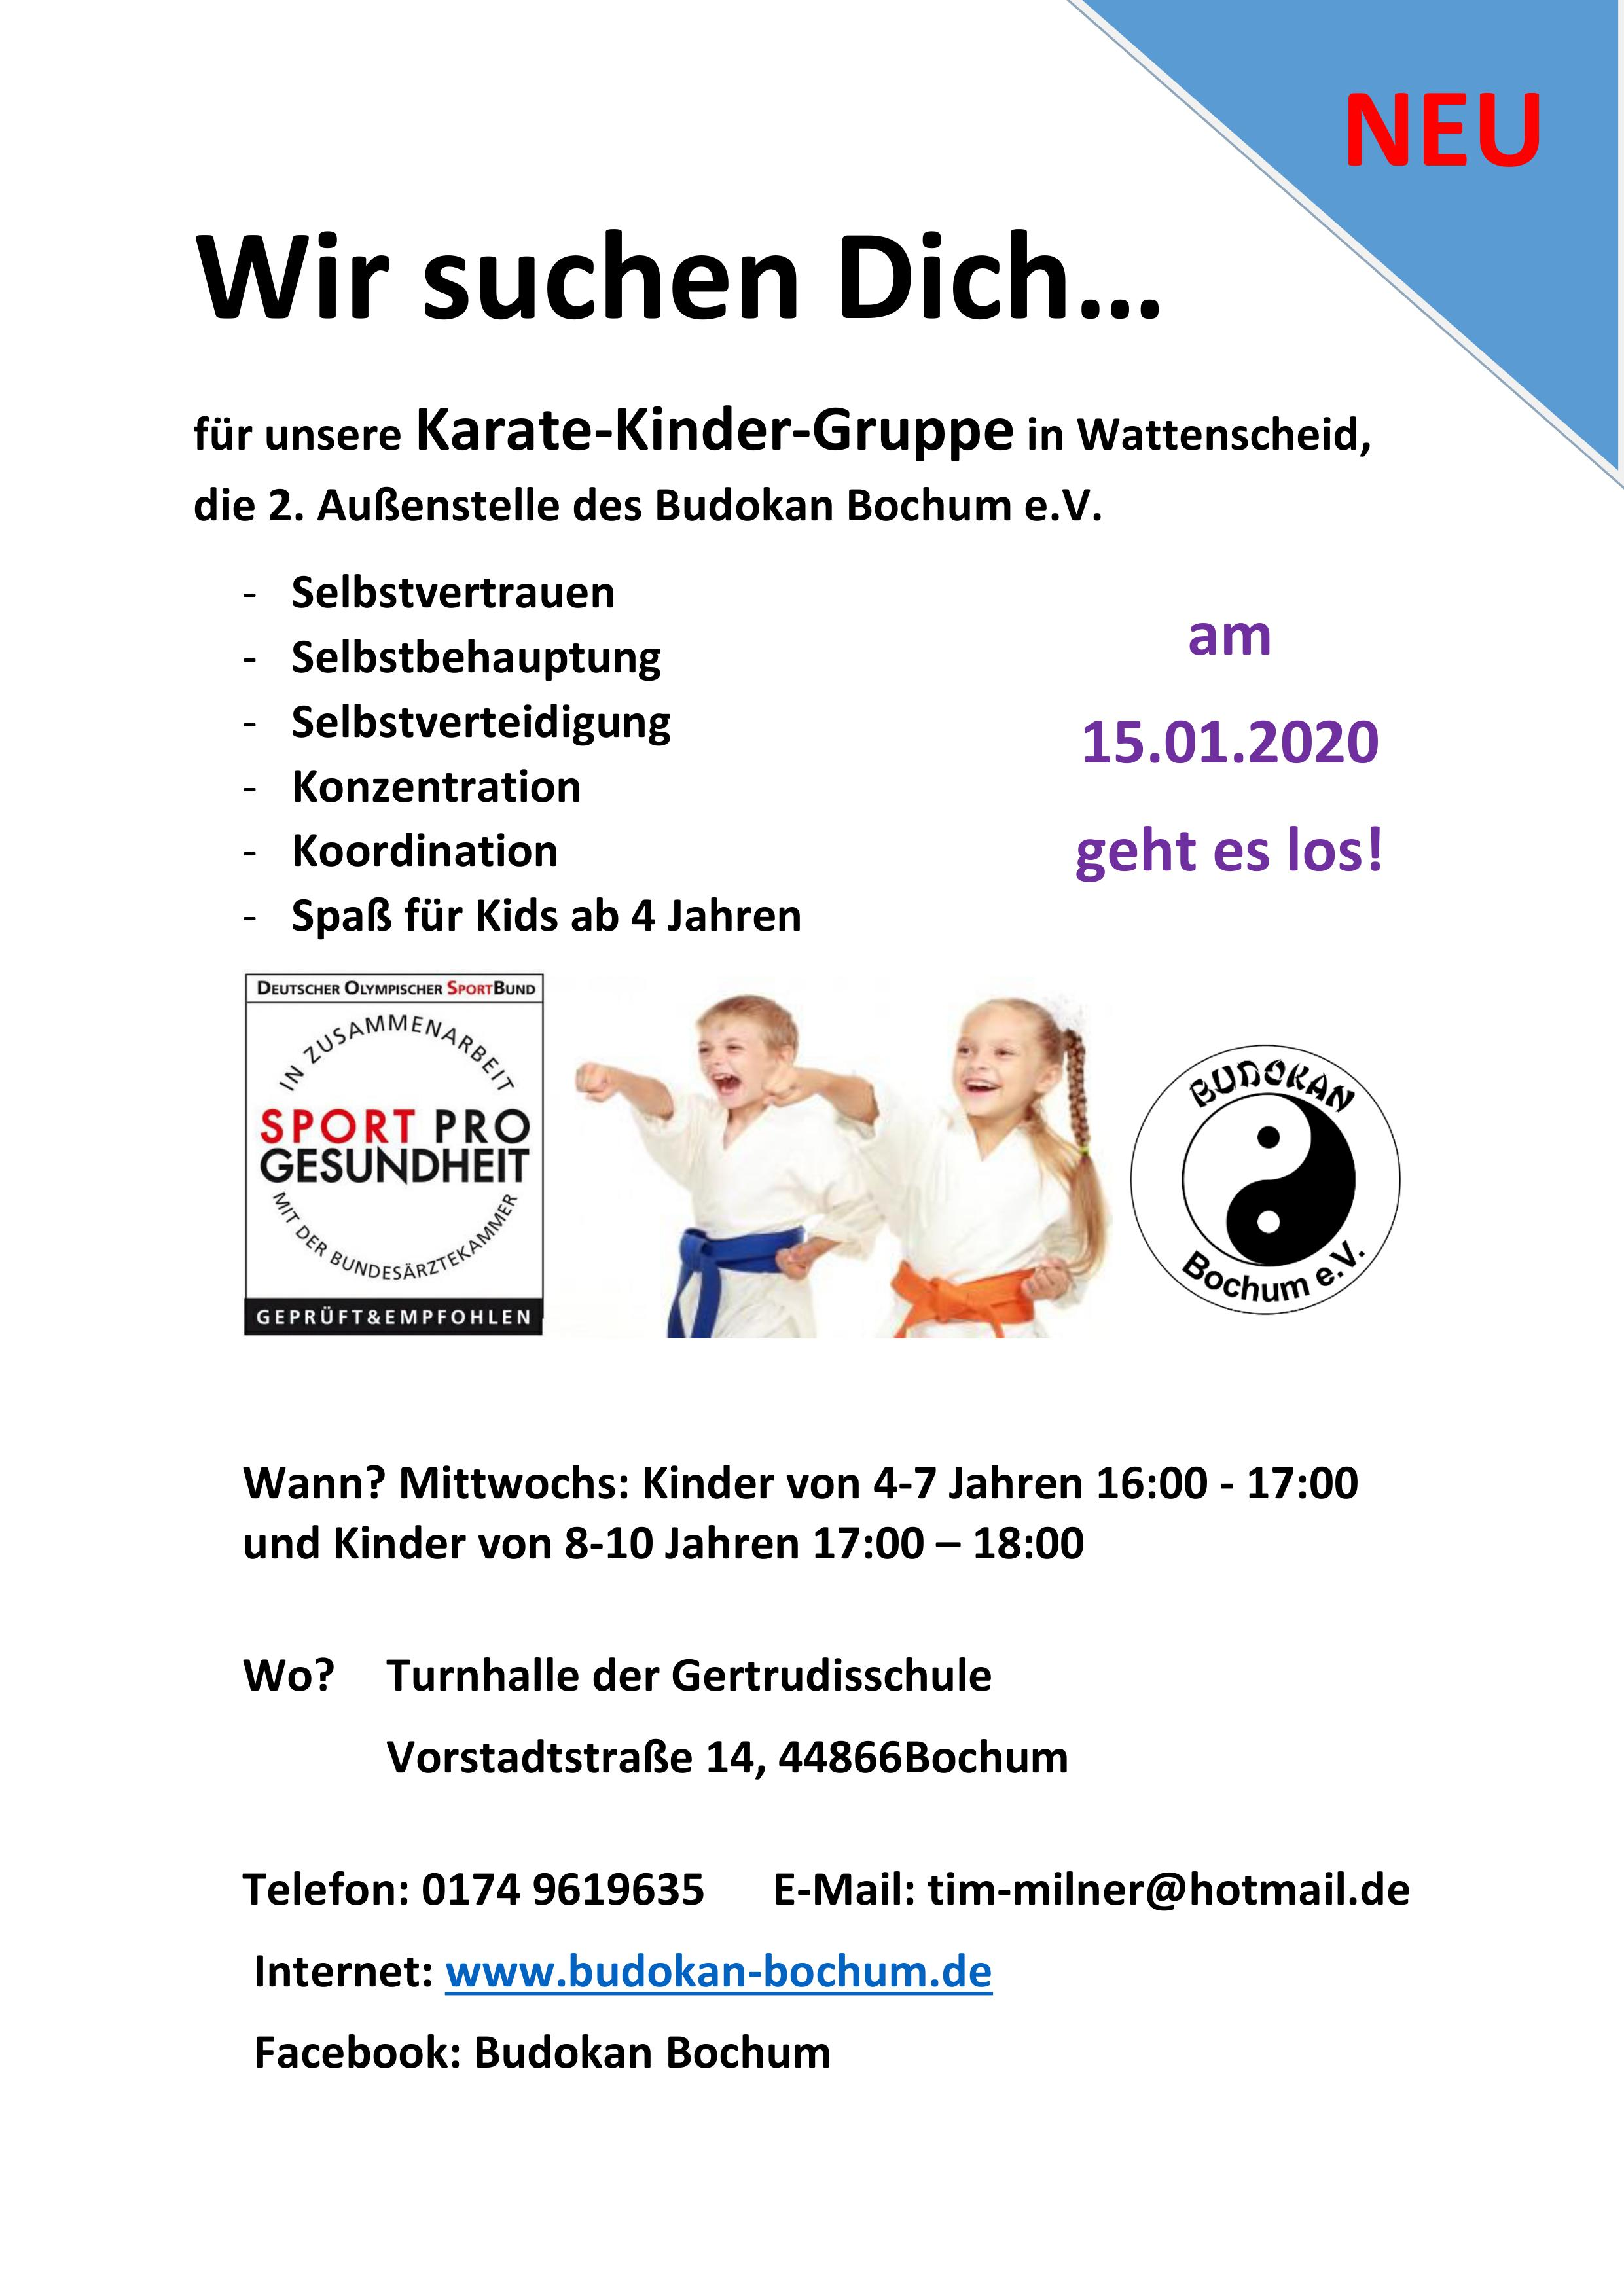 Karate-Kinder in Wattenscheid